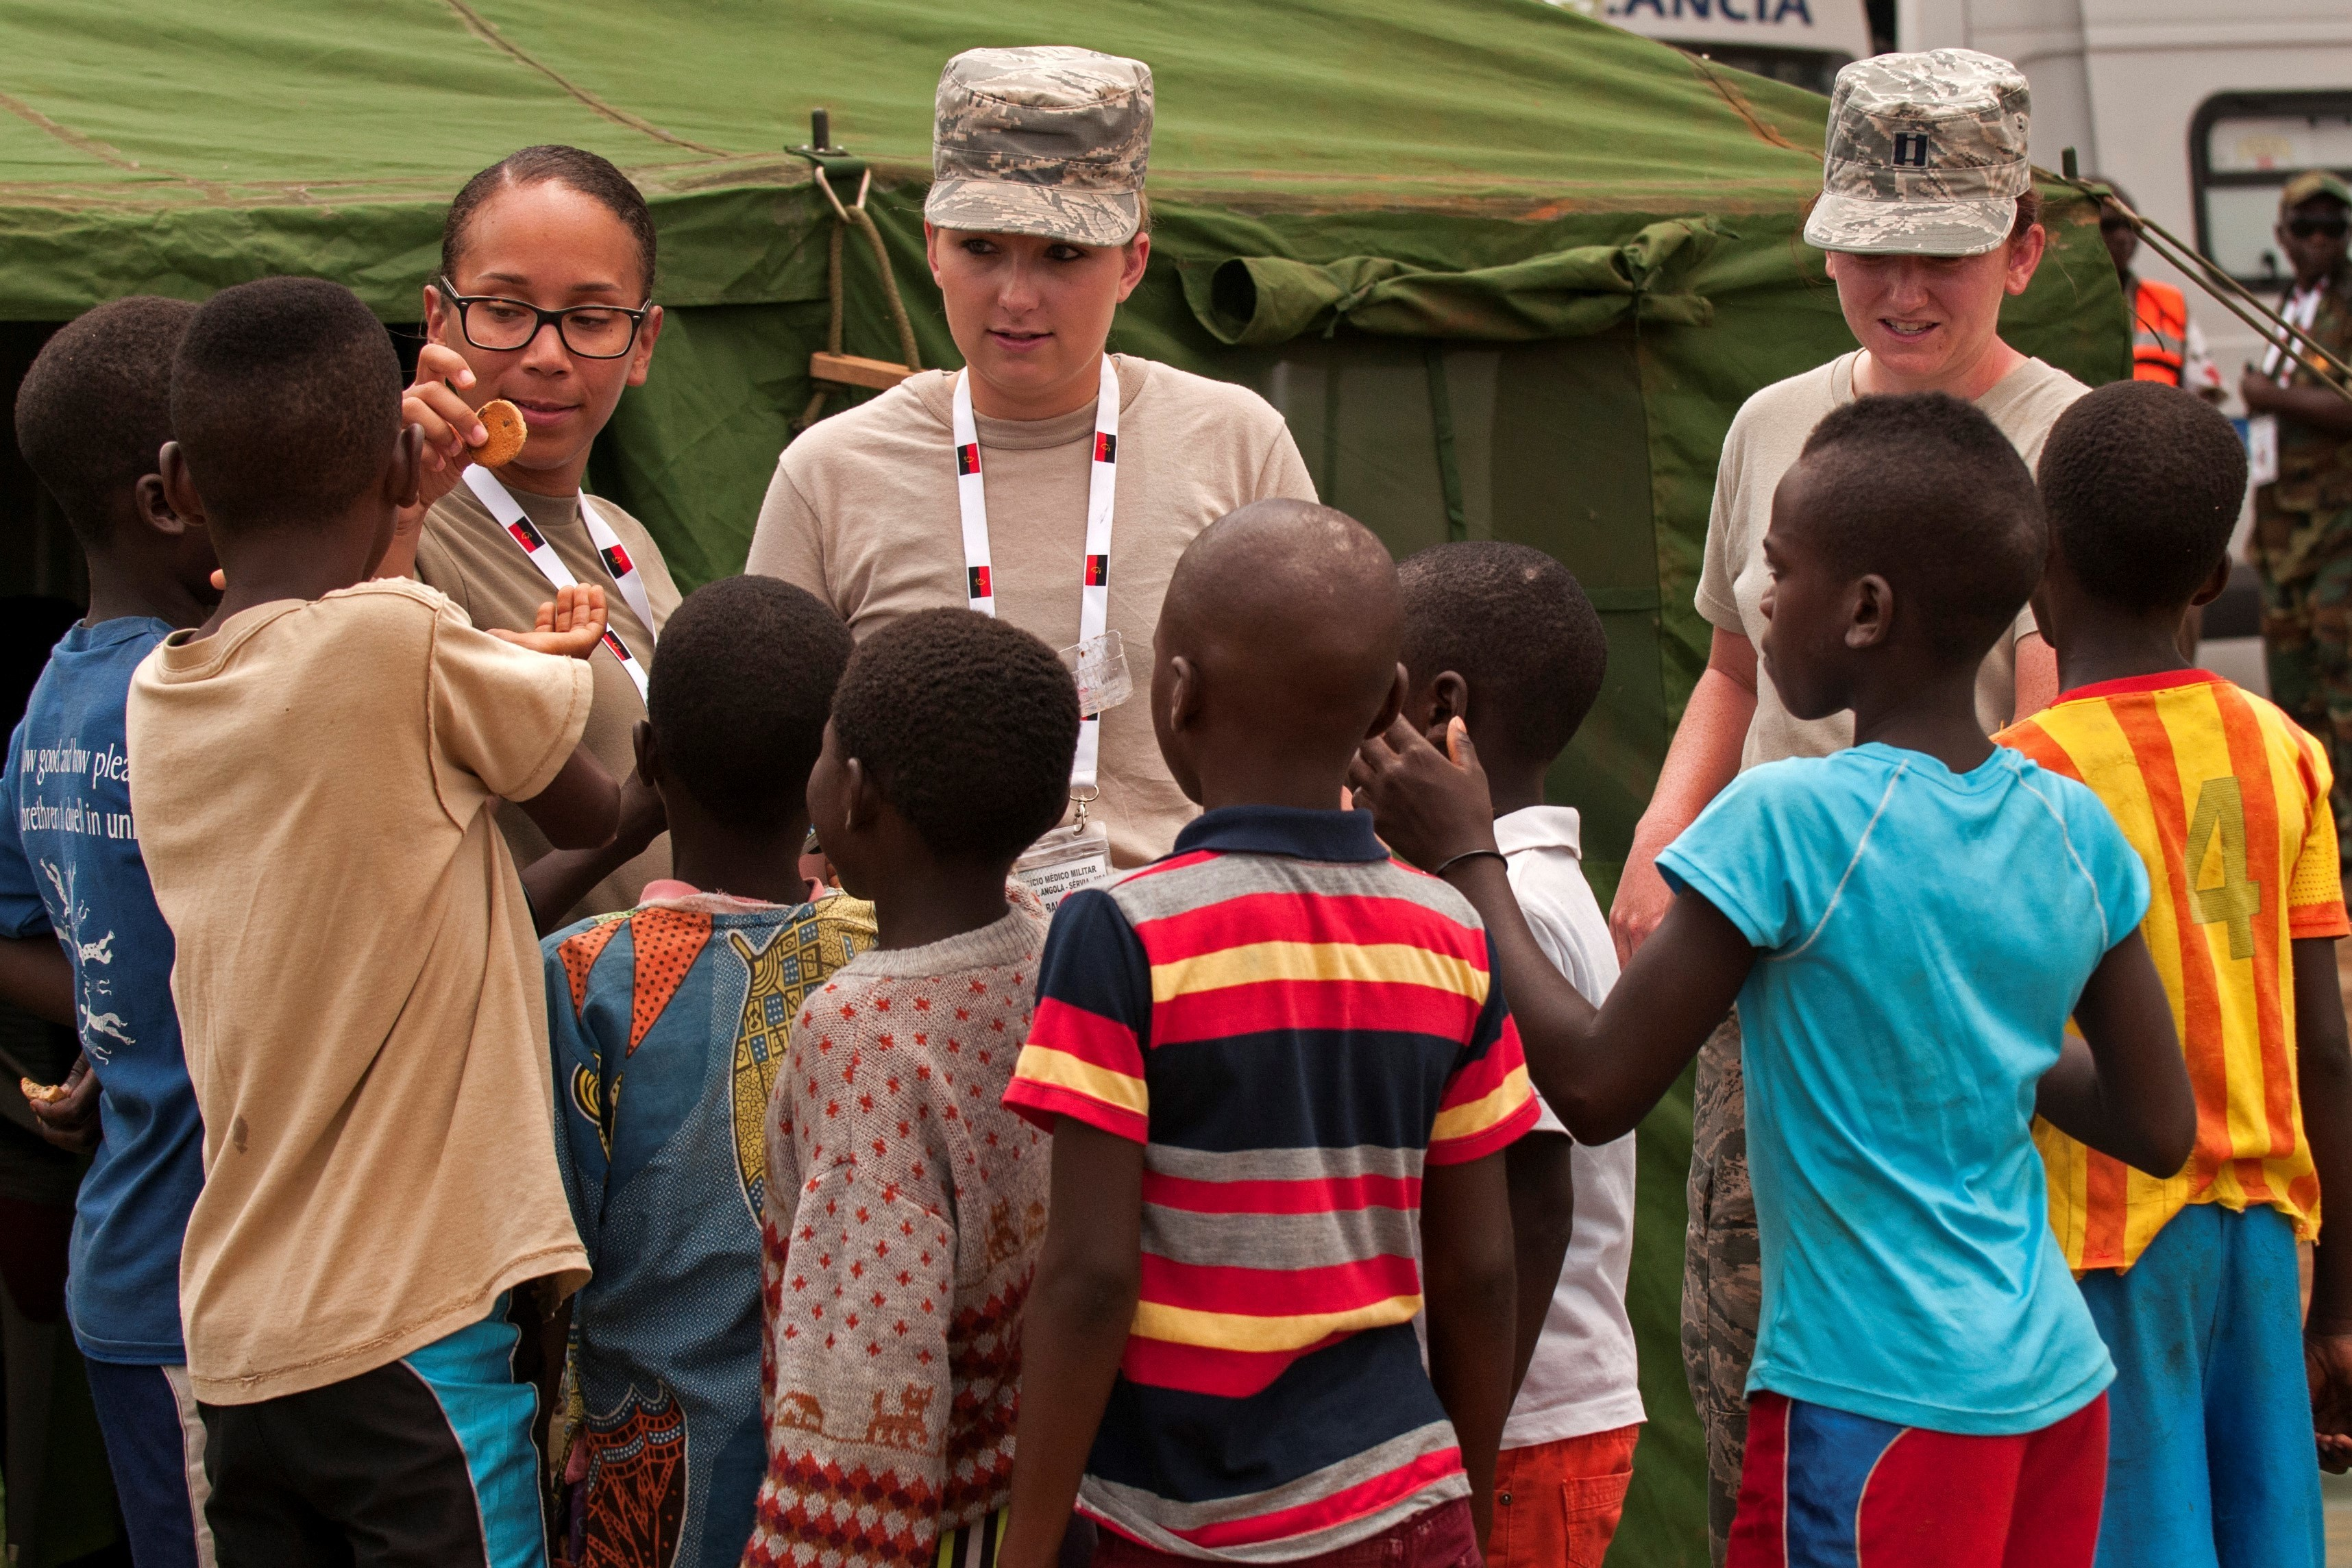 Staff Sgt. Ashley Maldonado (from left), Senior Airman Hannah Halcomb and Capt. Sarah Woodson from the Ohio National Guard pass out snacks to children in the village of Ceramica during the PAMBALA 2017 exercise Dec. 13, 2017, in Bengo Province, Angola. By participating in this trilateral medical engagement alongside the Angolan and Serbian Armed Forces, the Ohio National Guard is gaining real-world experience and training on tropical diseases while also providing valuable coaching and mentorship on disease management and containment. Ohio has been paired with the Republic of Serbia since 2006 through the National Guard State Partnership Program. (Ohio National Guard photo by Staff Sgt. Wendy Kuhn)